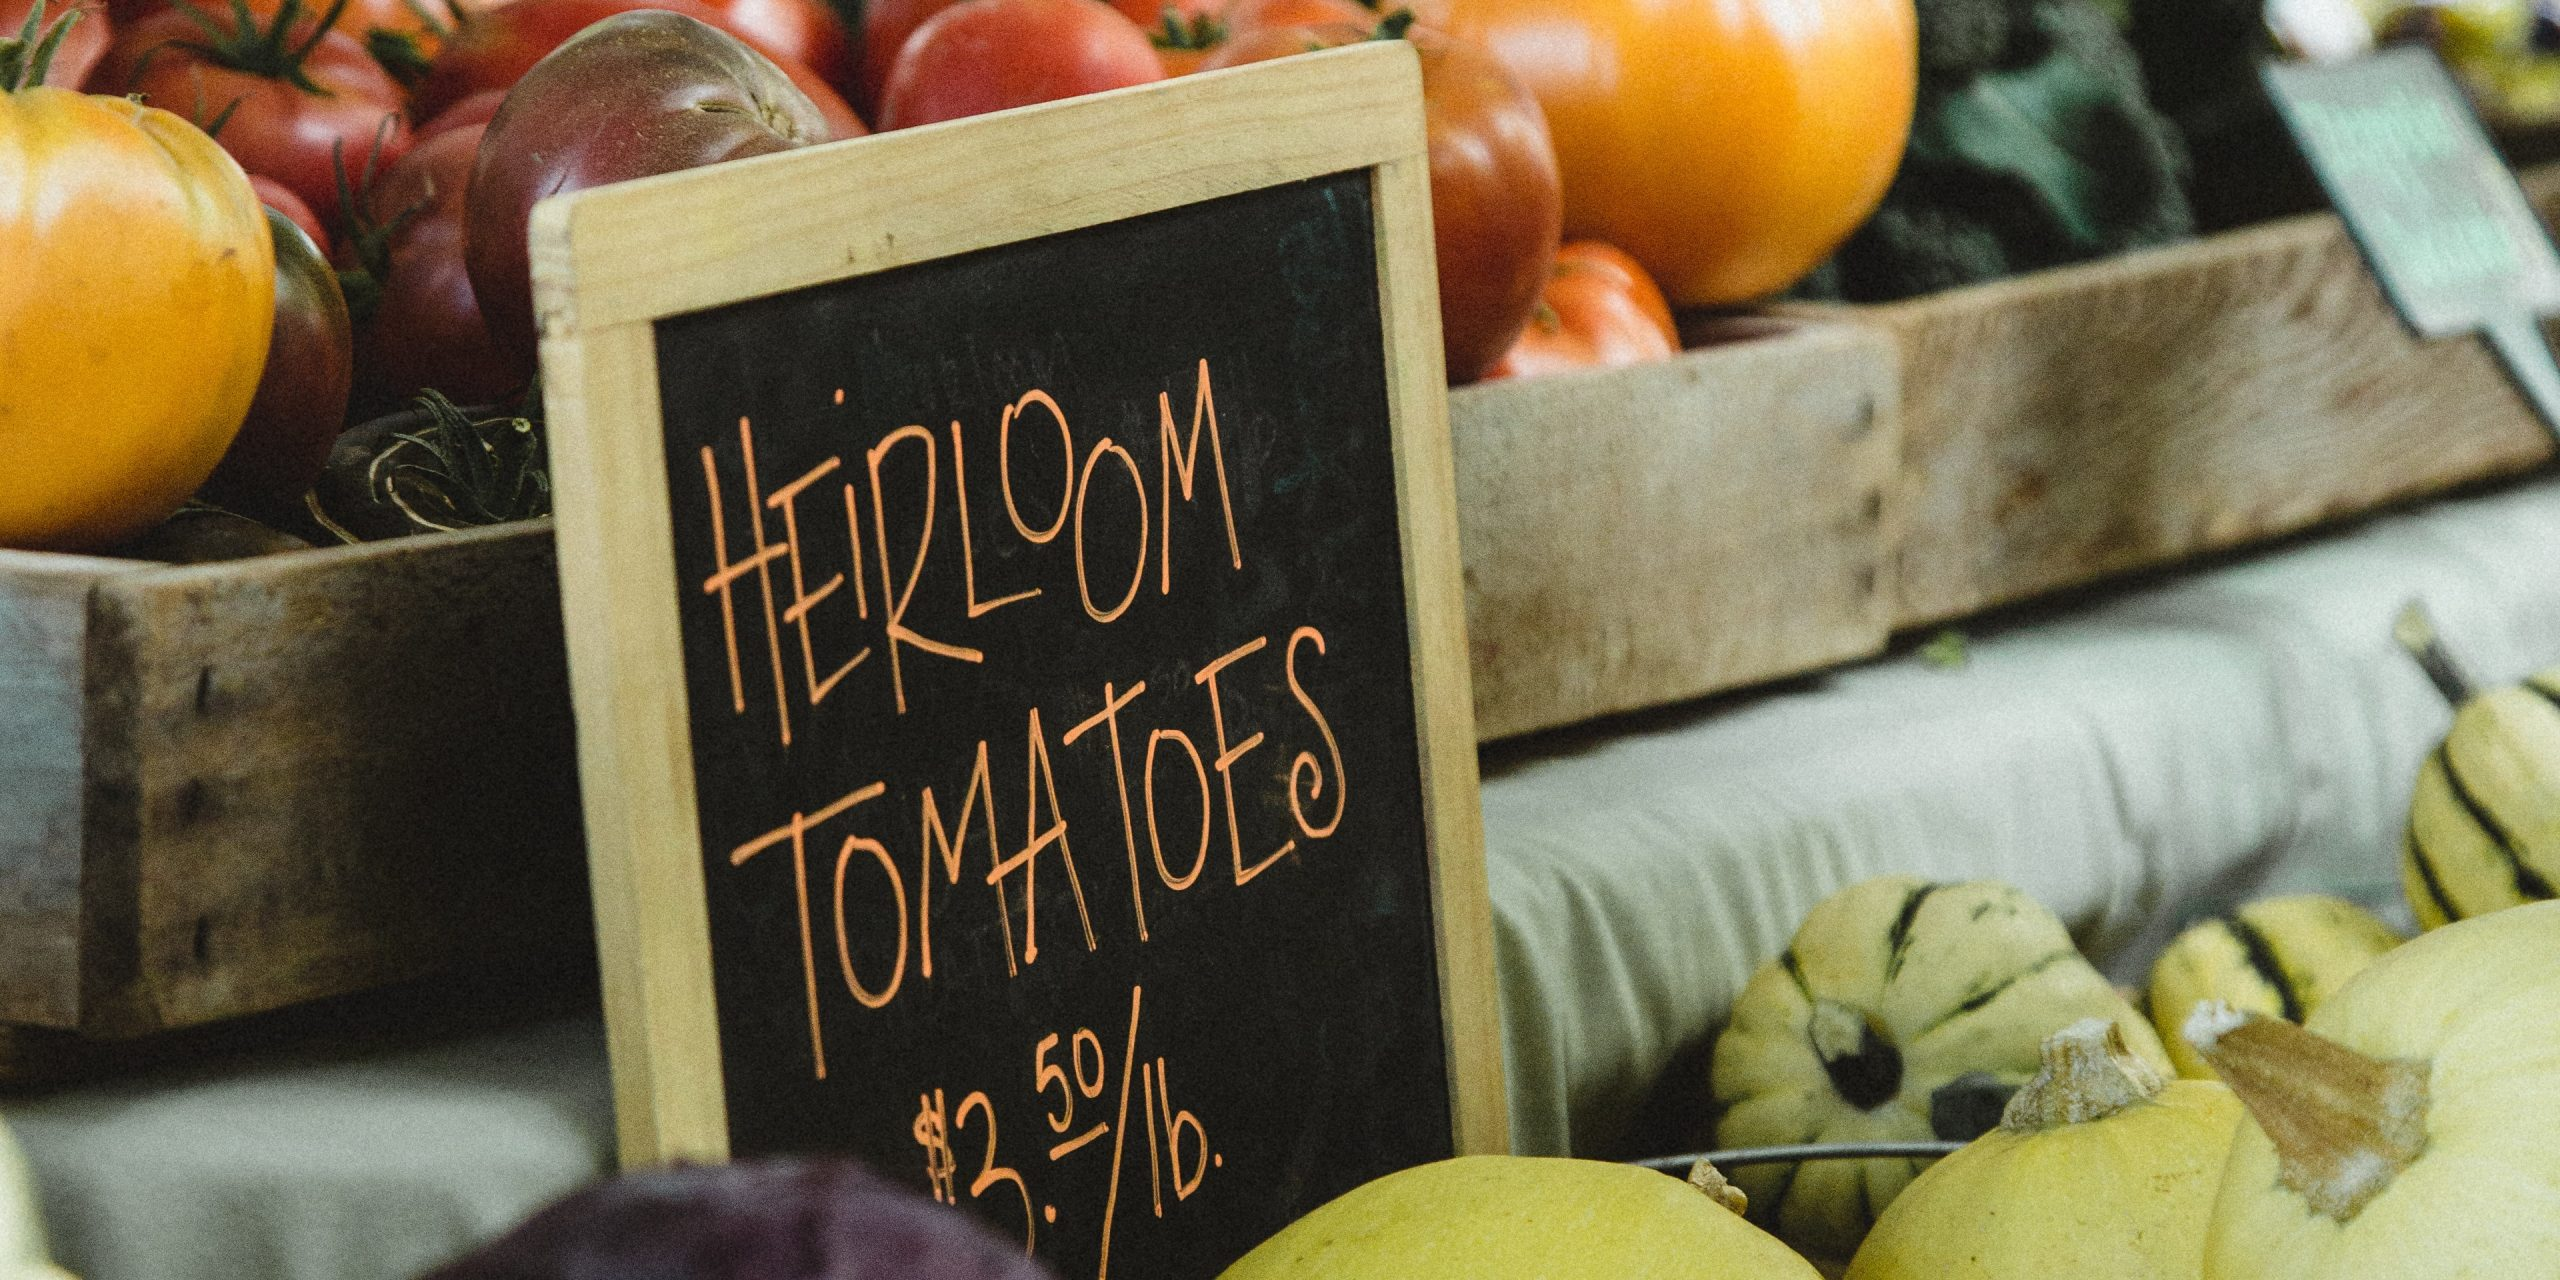 community benefits of local foods